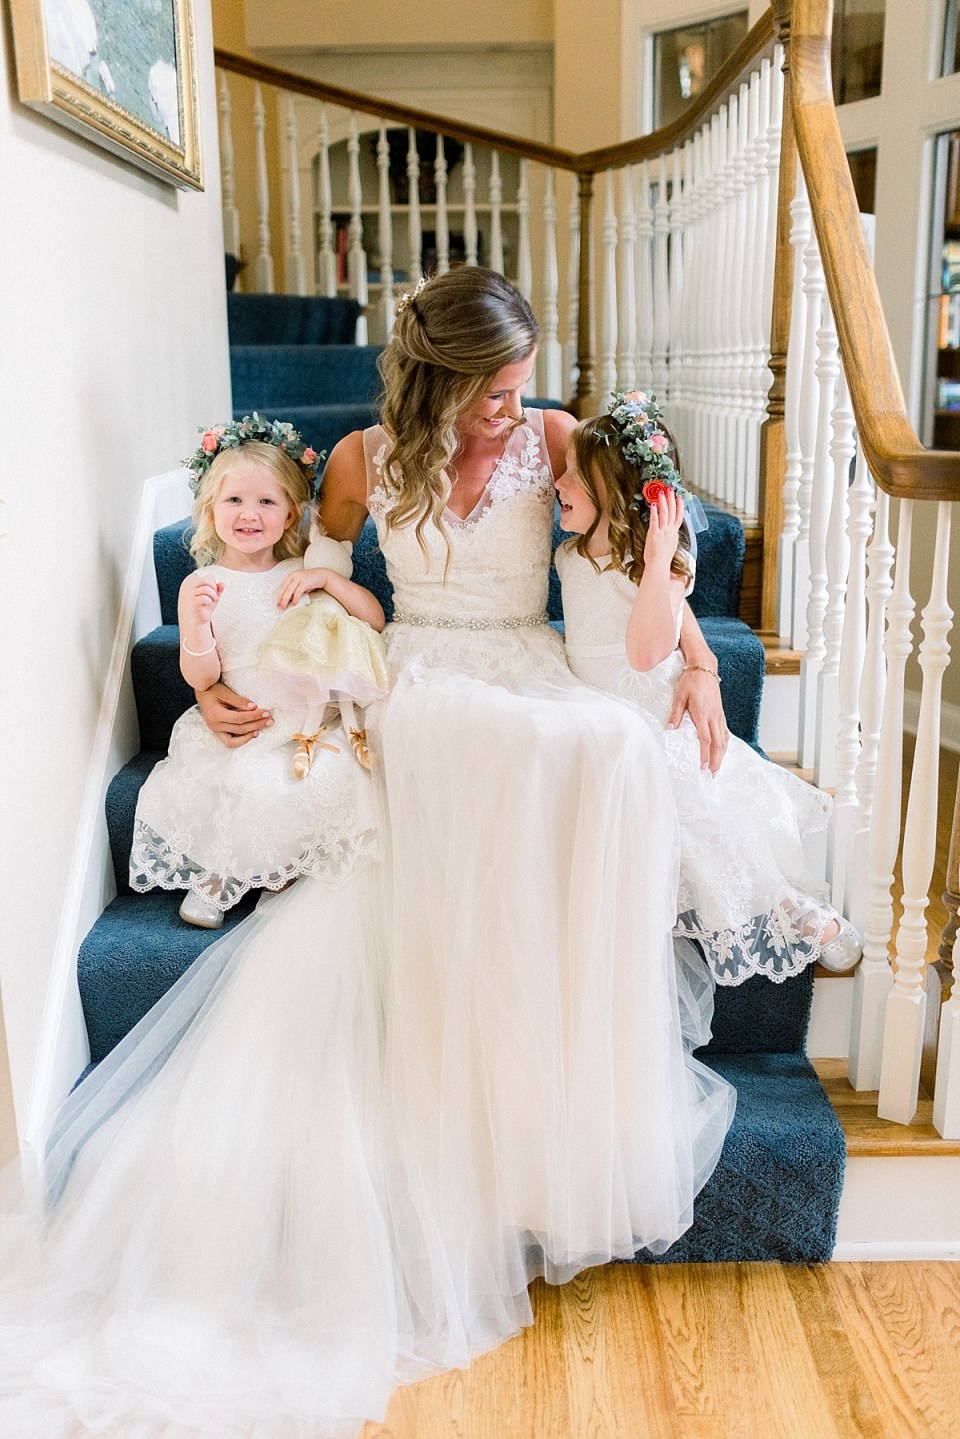 Arielle Peters Photography | Bride sitting with flower girls on stairs at Sycamore Hills Golf Club in Fort Wayne, Indiana on wedding day.